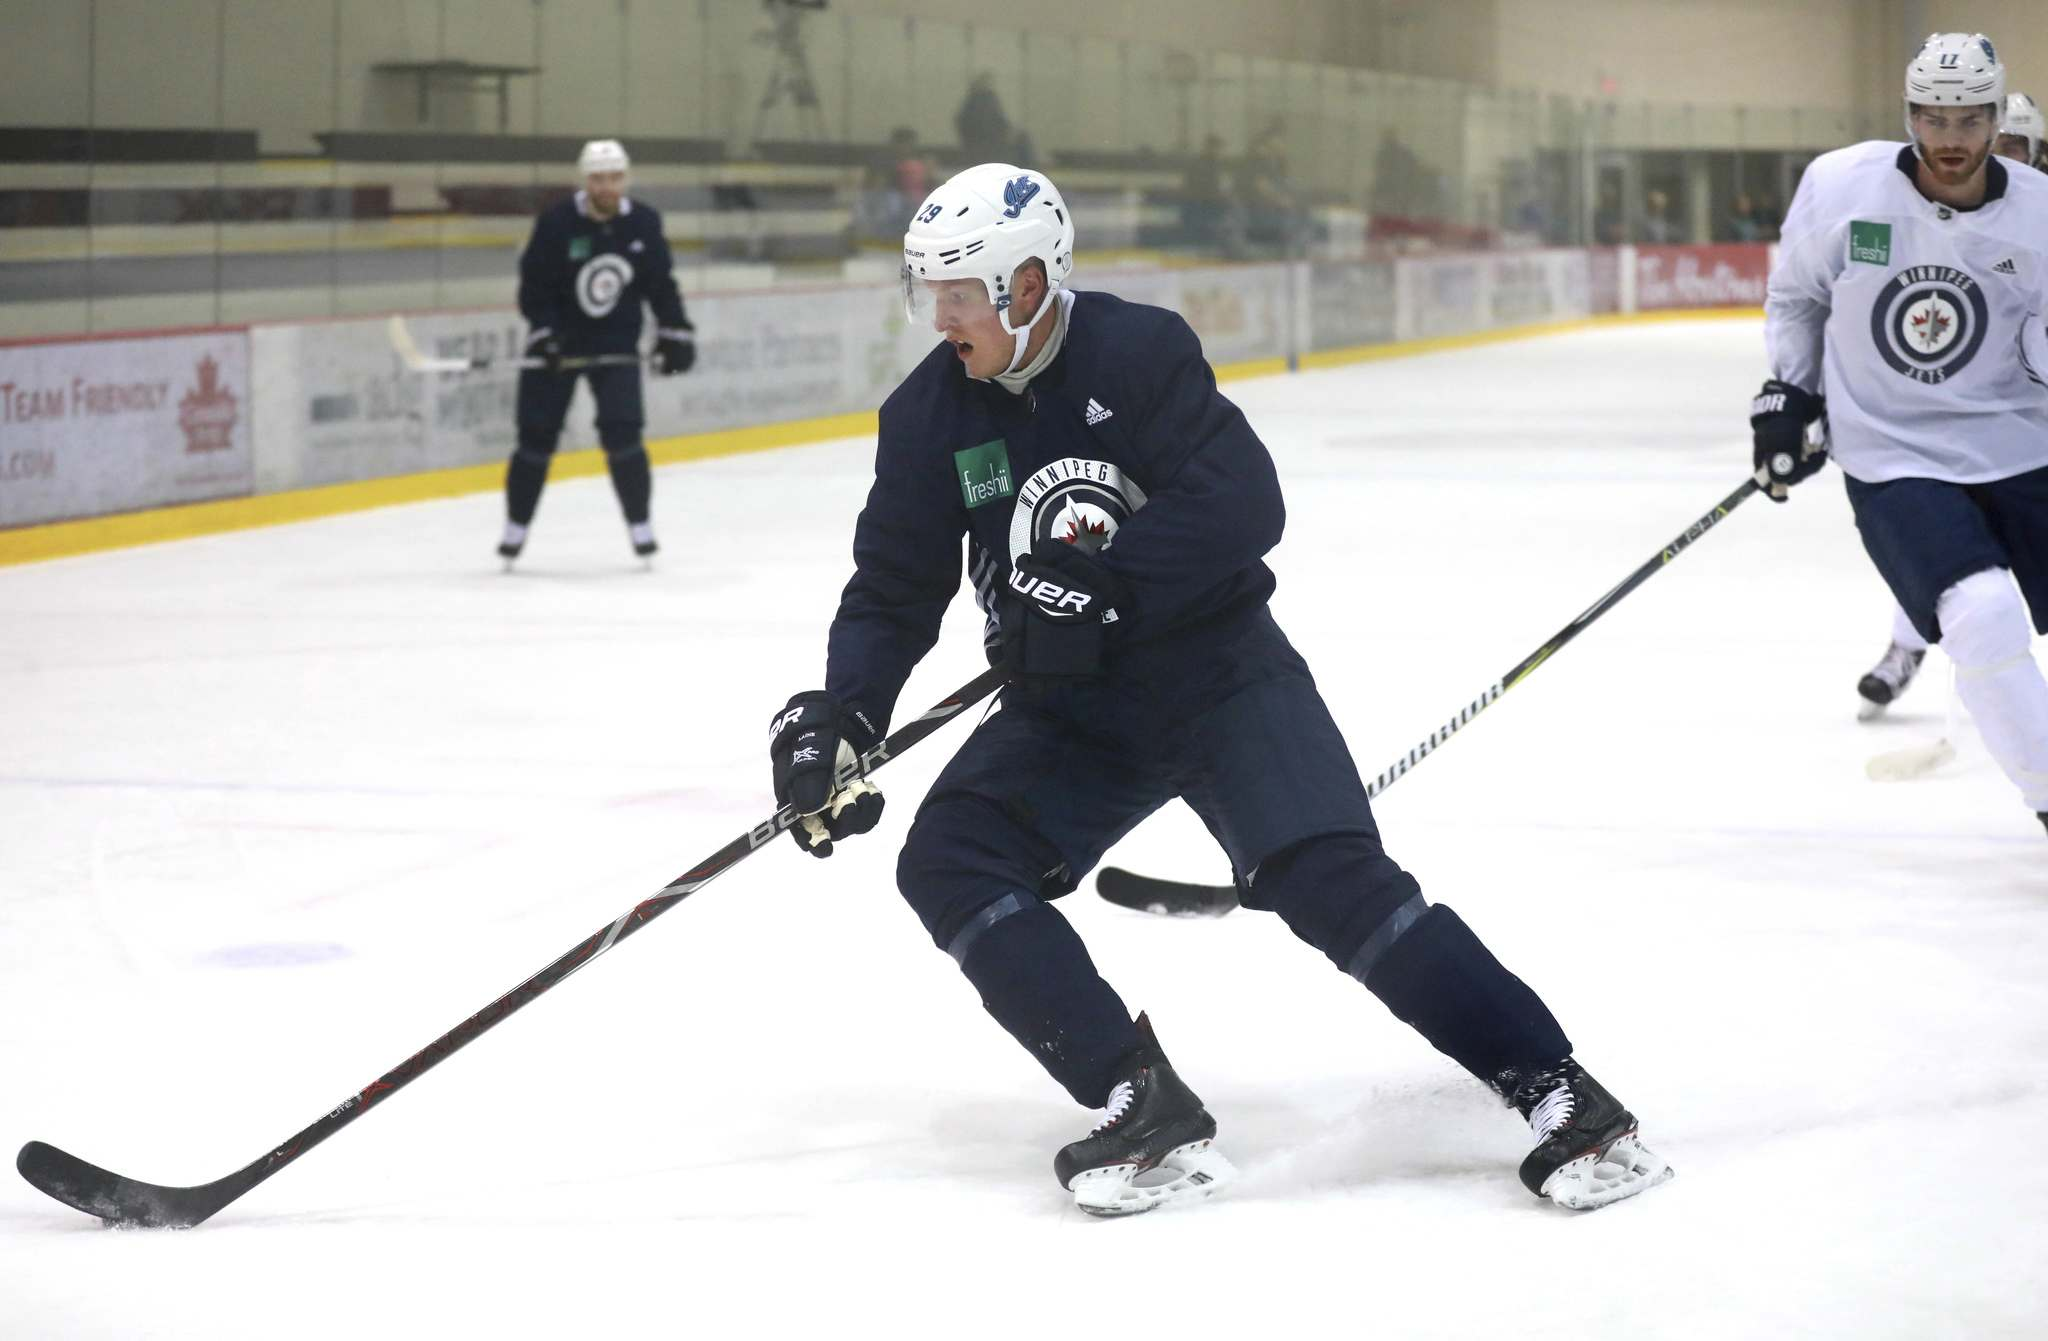 Patrik Laine hopes losing a bit of weight helps with his speed on the ice. (Ruth Bonneville / Winnipeg Free Press)</p>